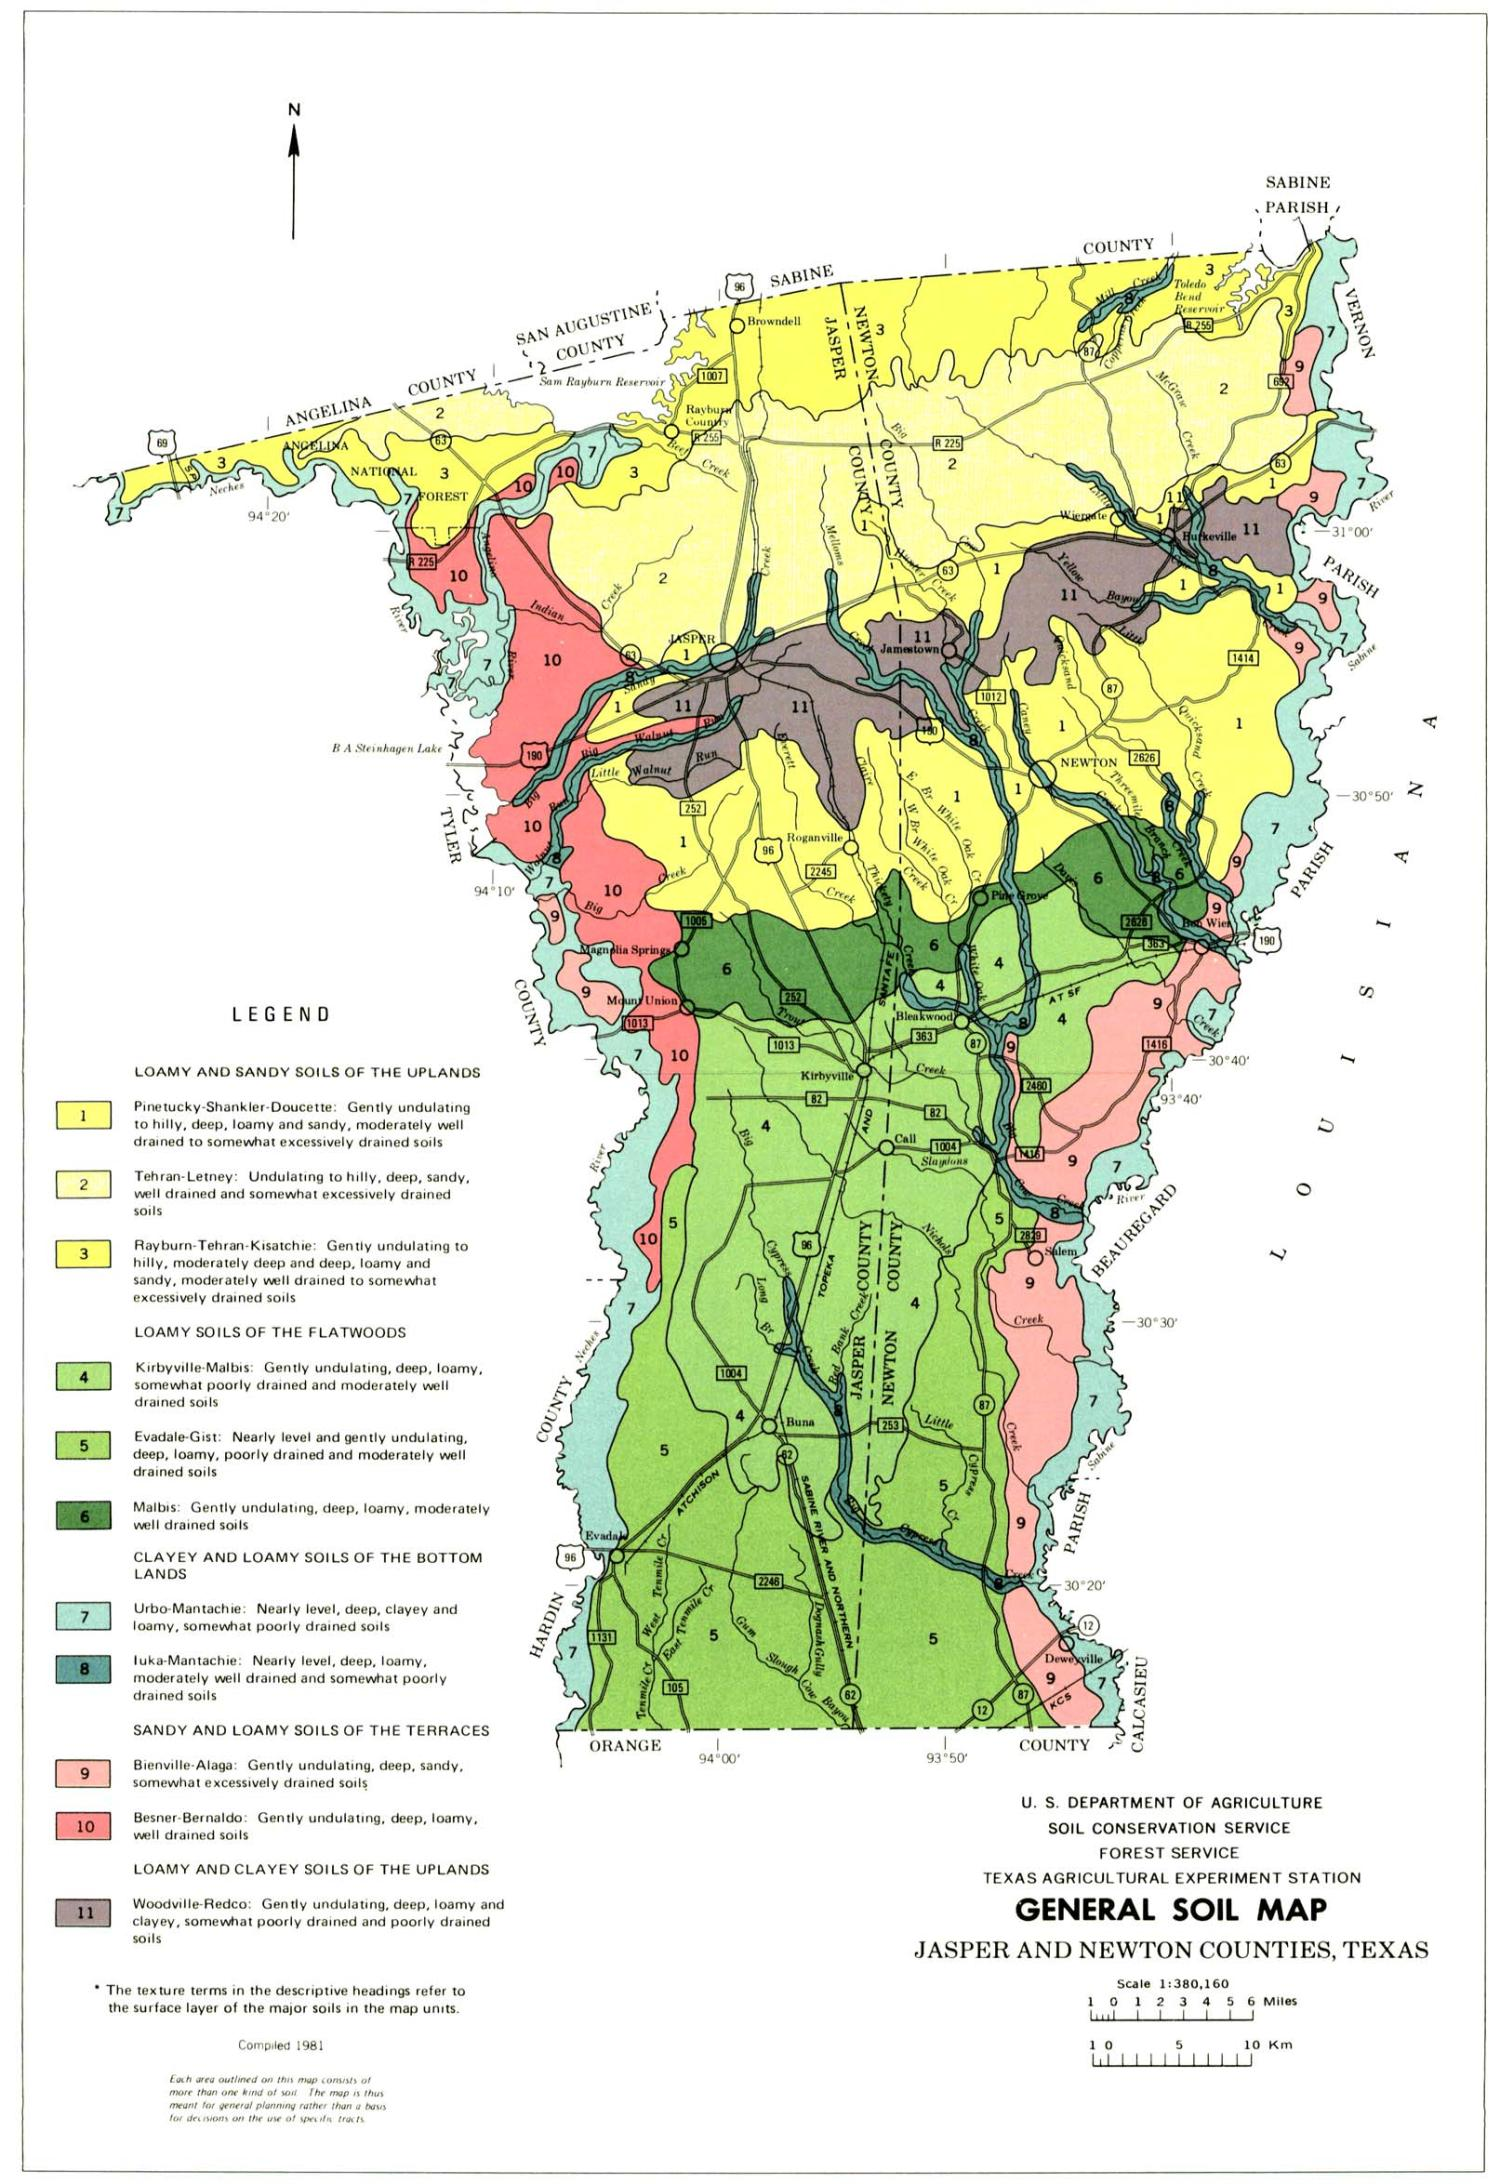 General Soil Map Jasper And Newton Counties Texas The Portal - Counties texas map